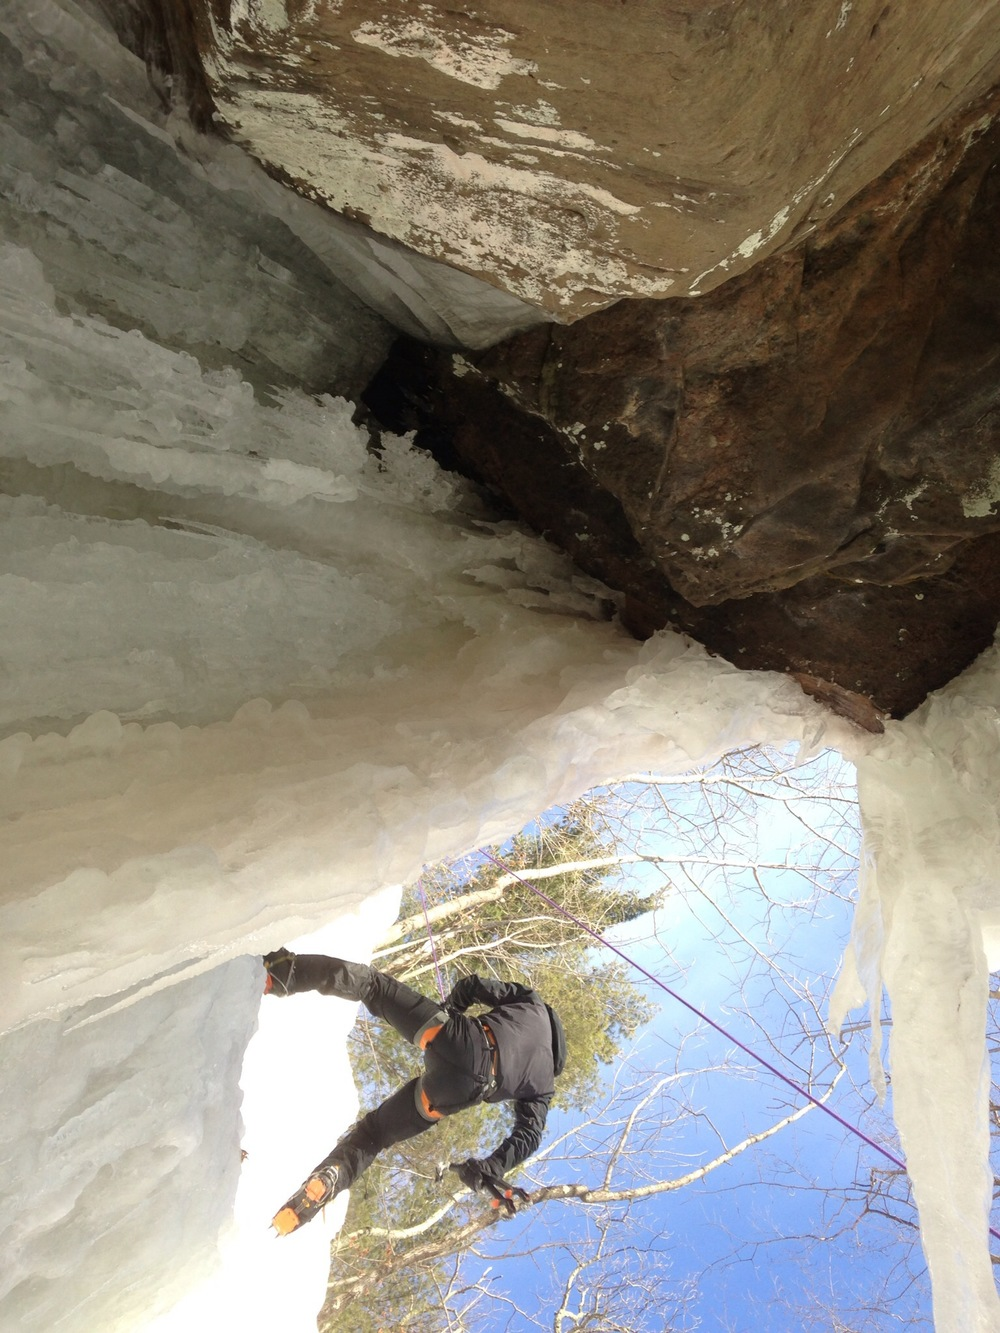 Ice climbing in the Gunks. Source: my instagram.